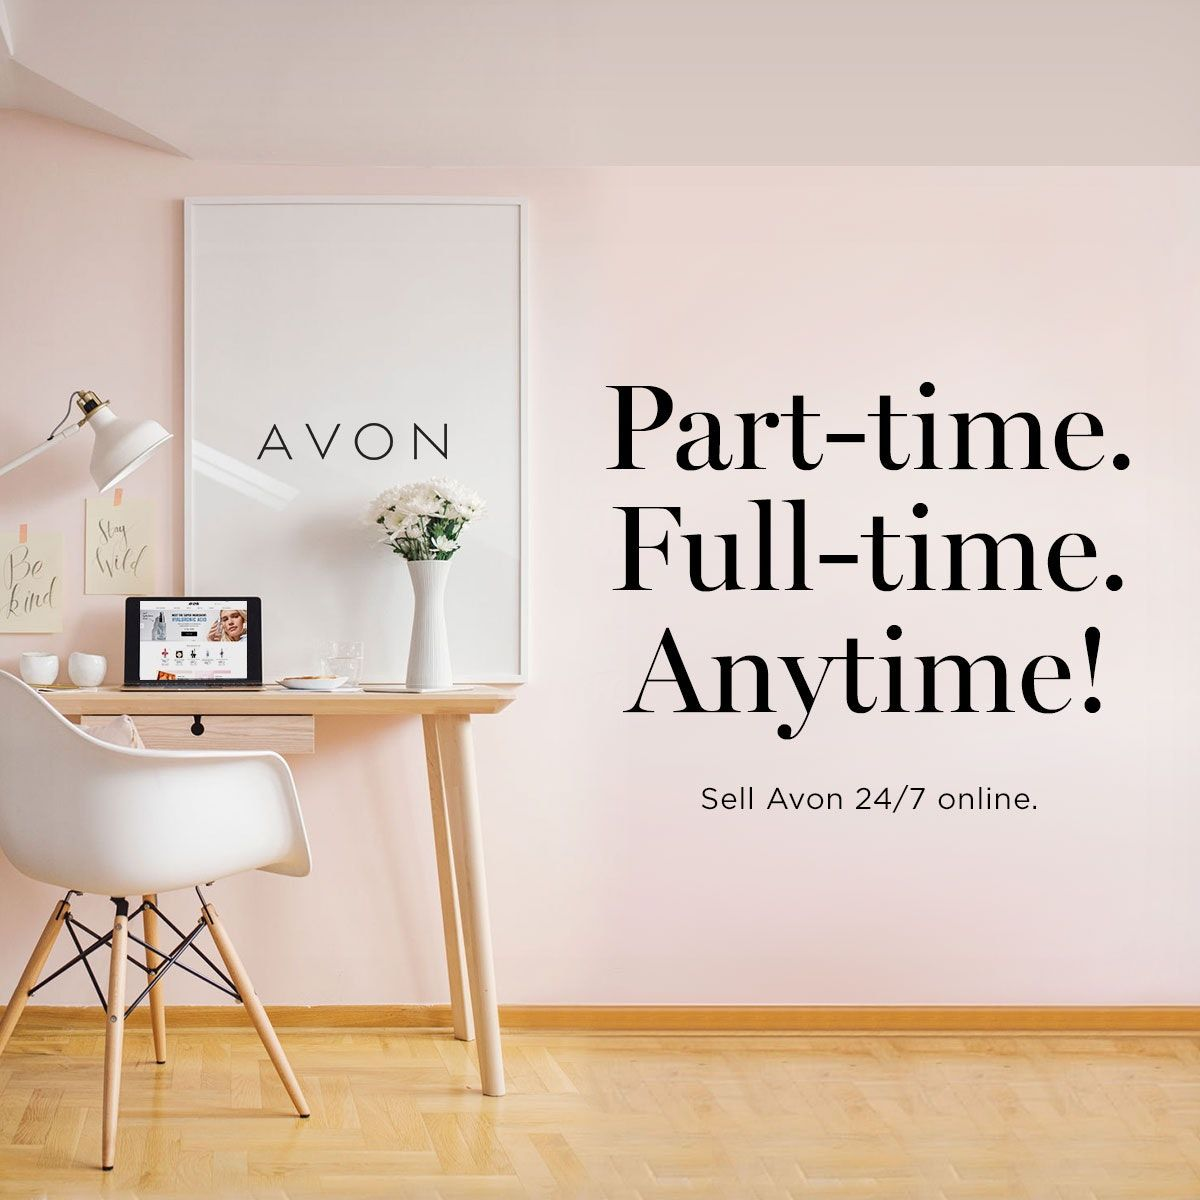 Sign up to an Avon Representative for free from Feb